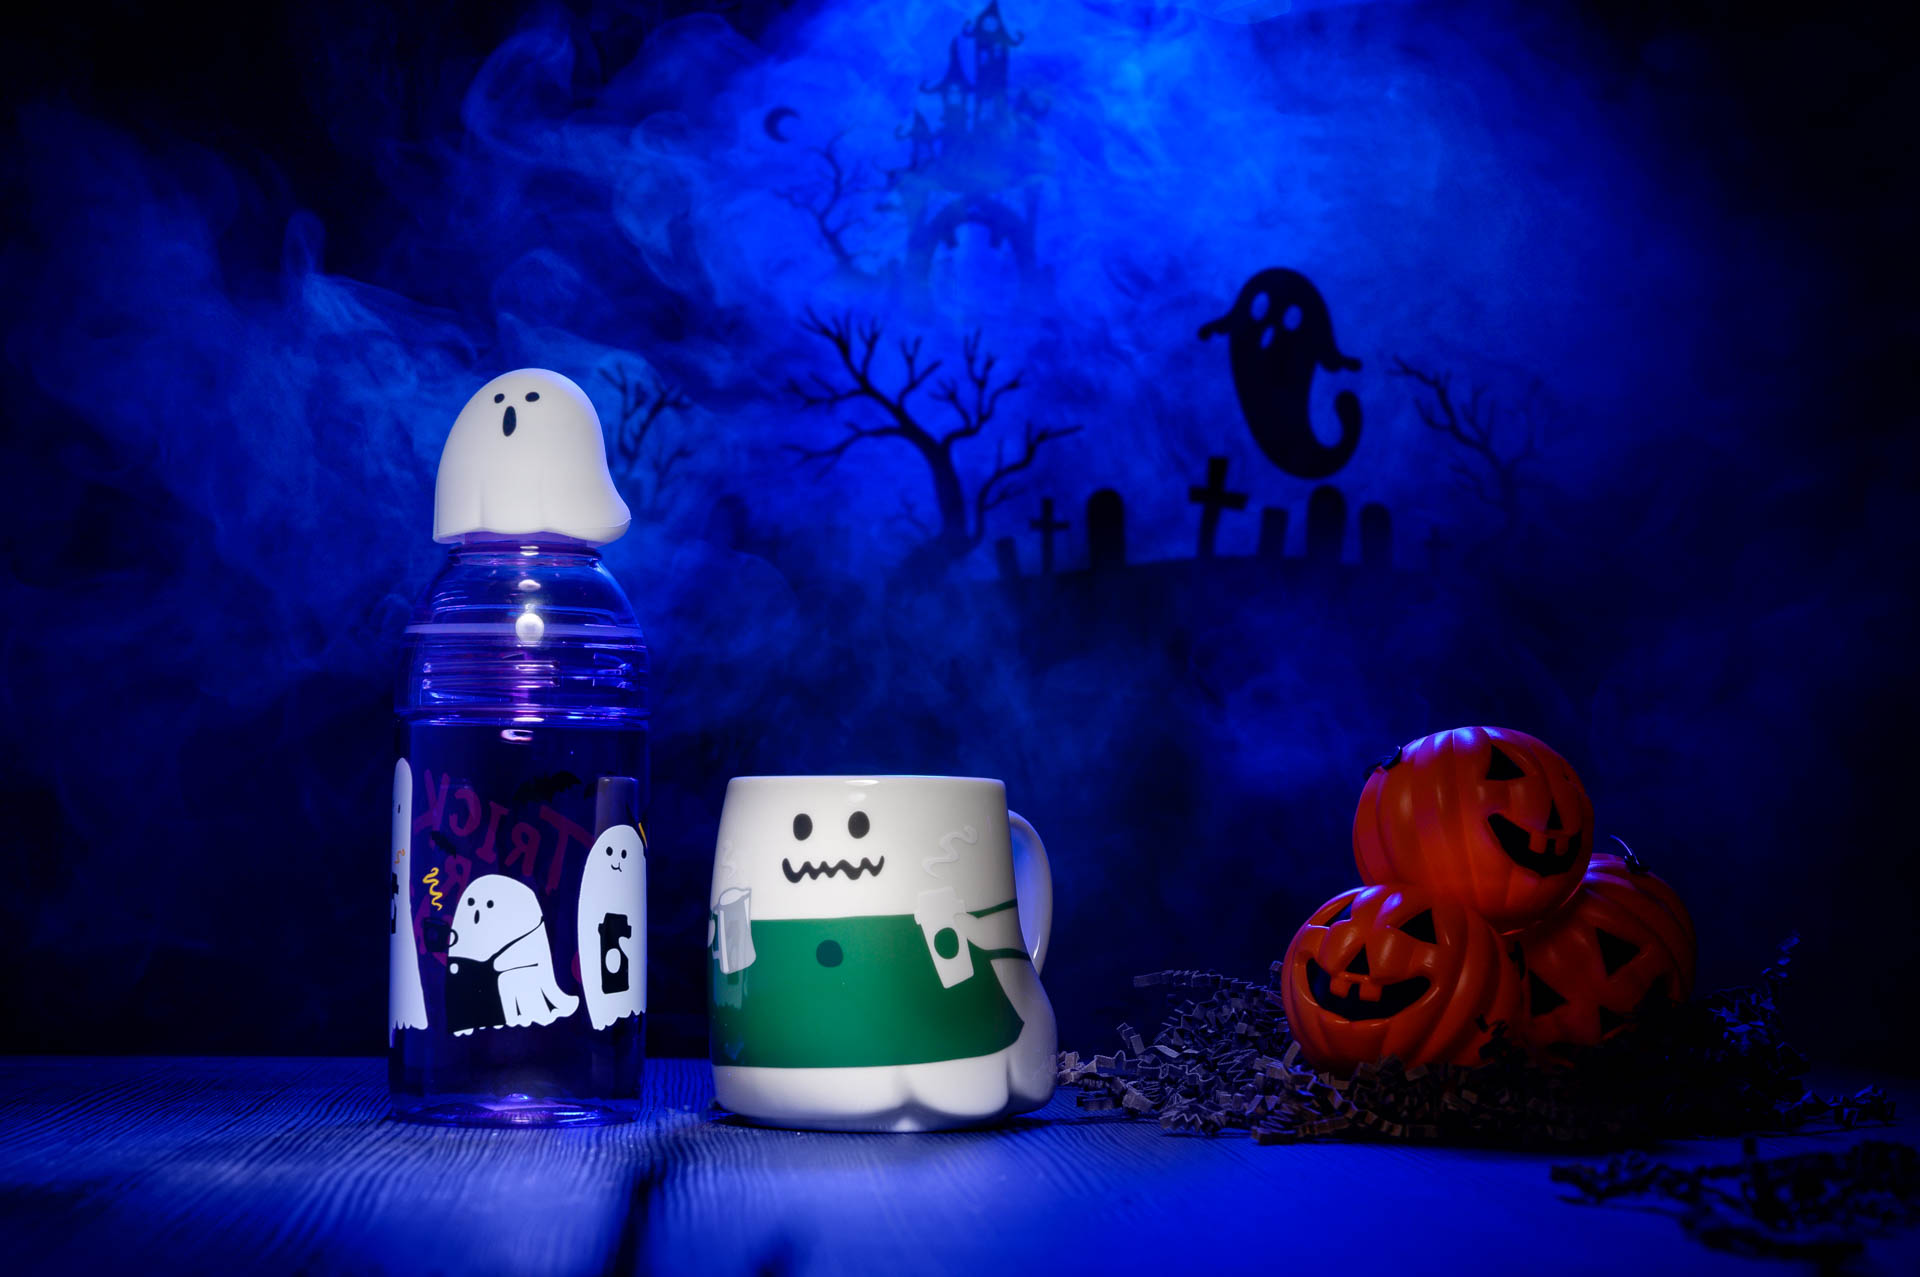 Starbucks Halloween-themed treats and merch are here – these new cups are spookily adorable - Alvinology